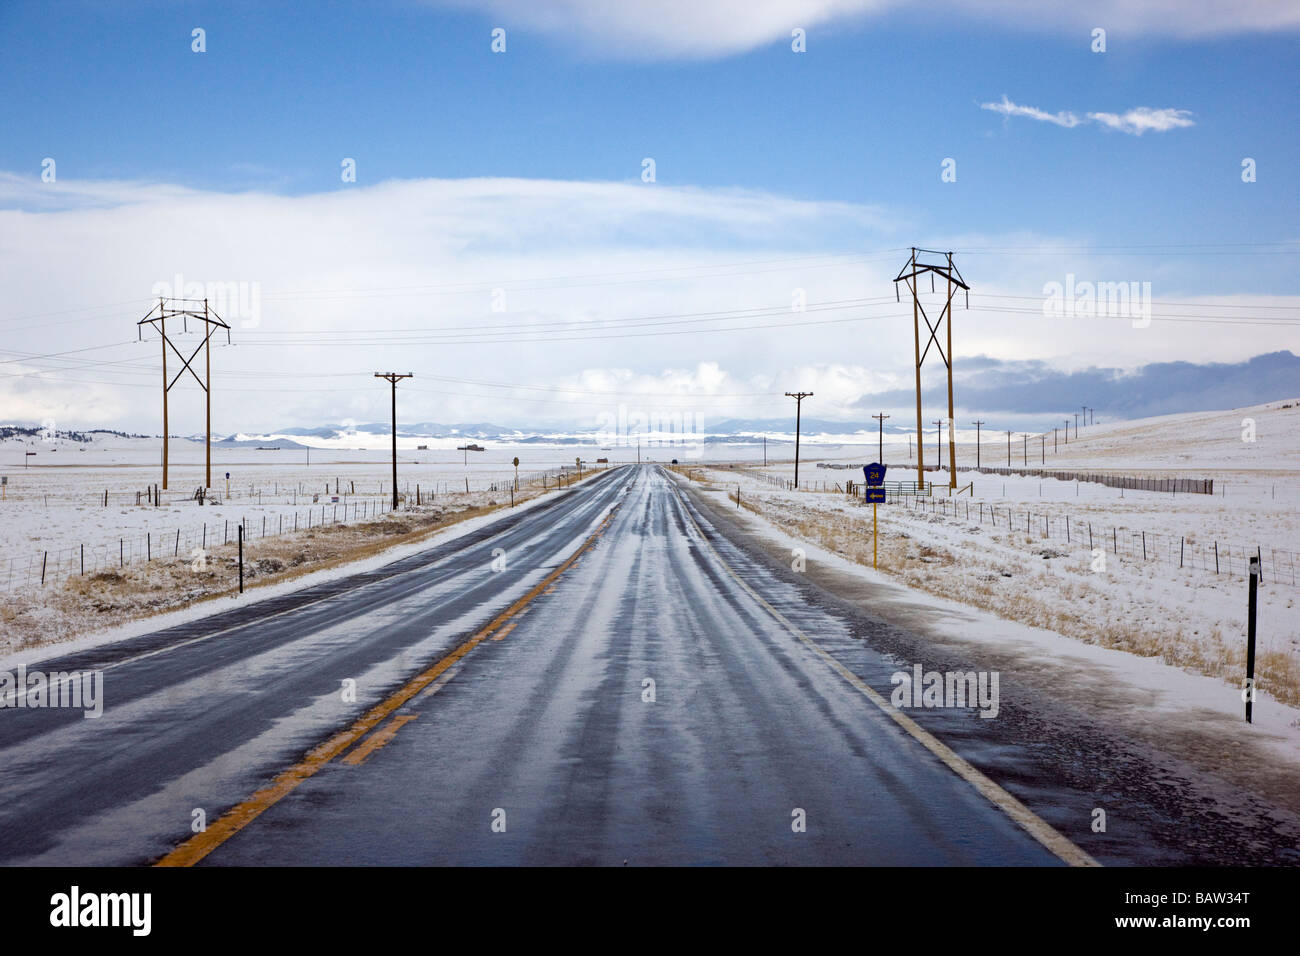 View from the driver s perspective of Route 285 between Fairplay and Buena Vista in a clearing spring snow storm - Stock Image